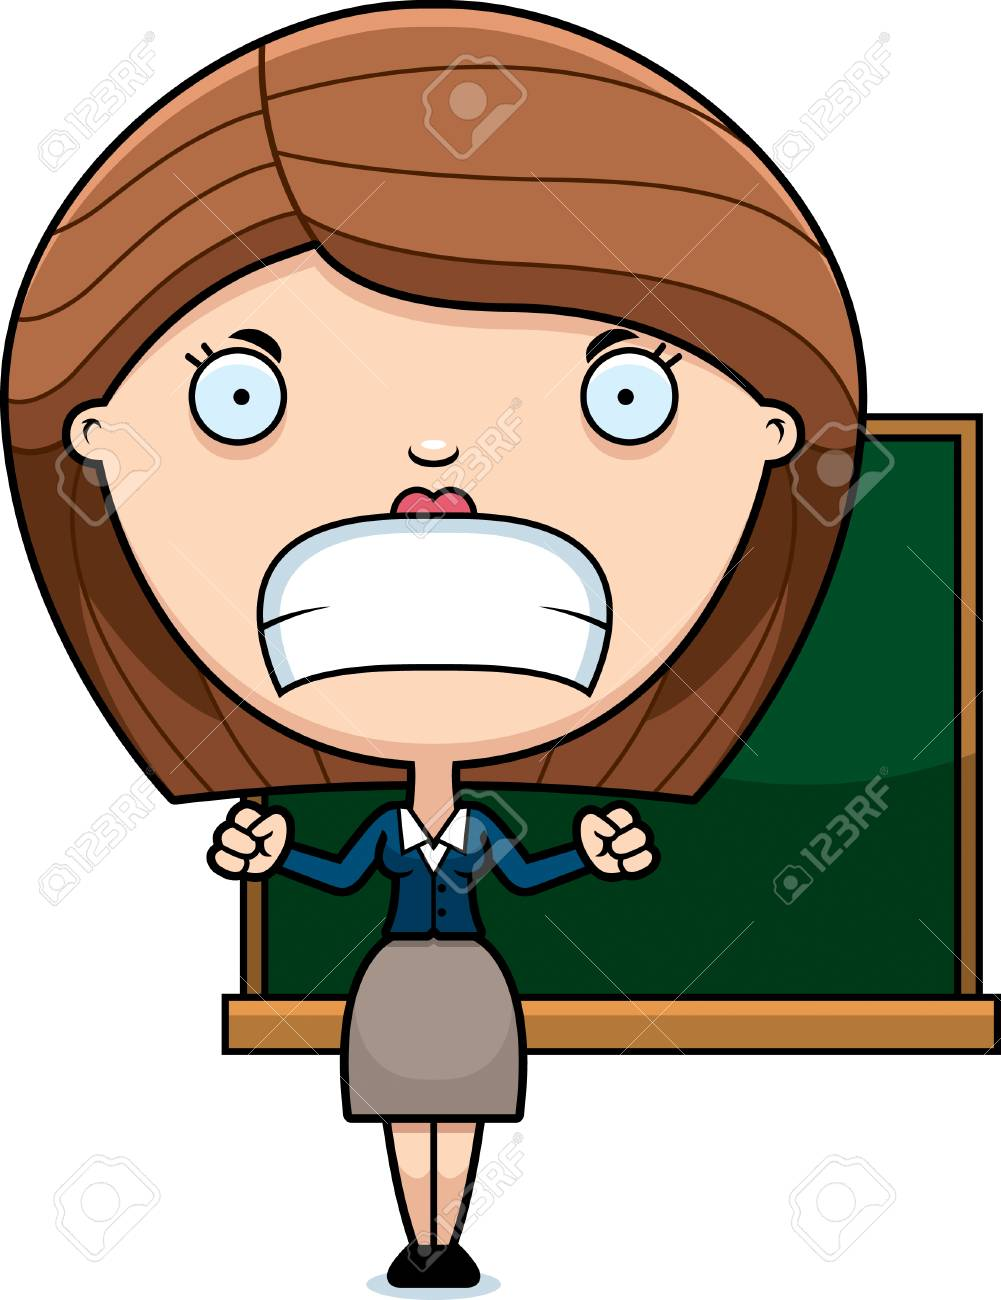 A cartoon illustration of a teacher looking angry..